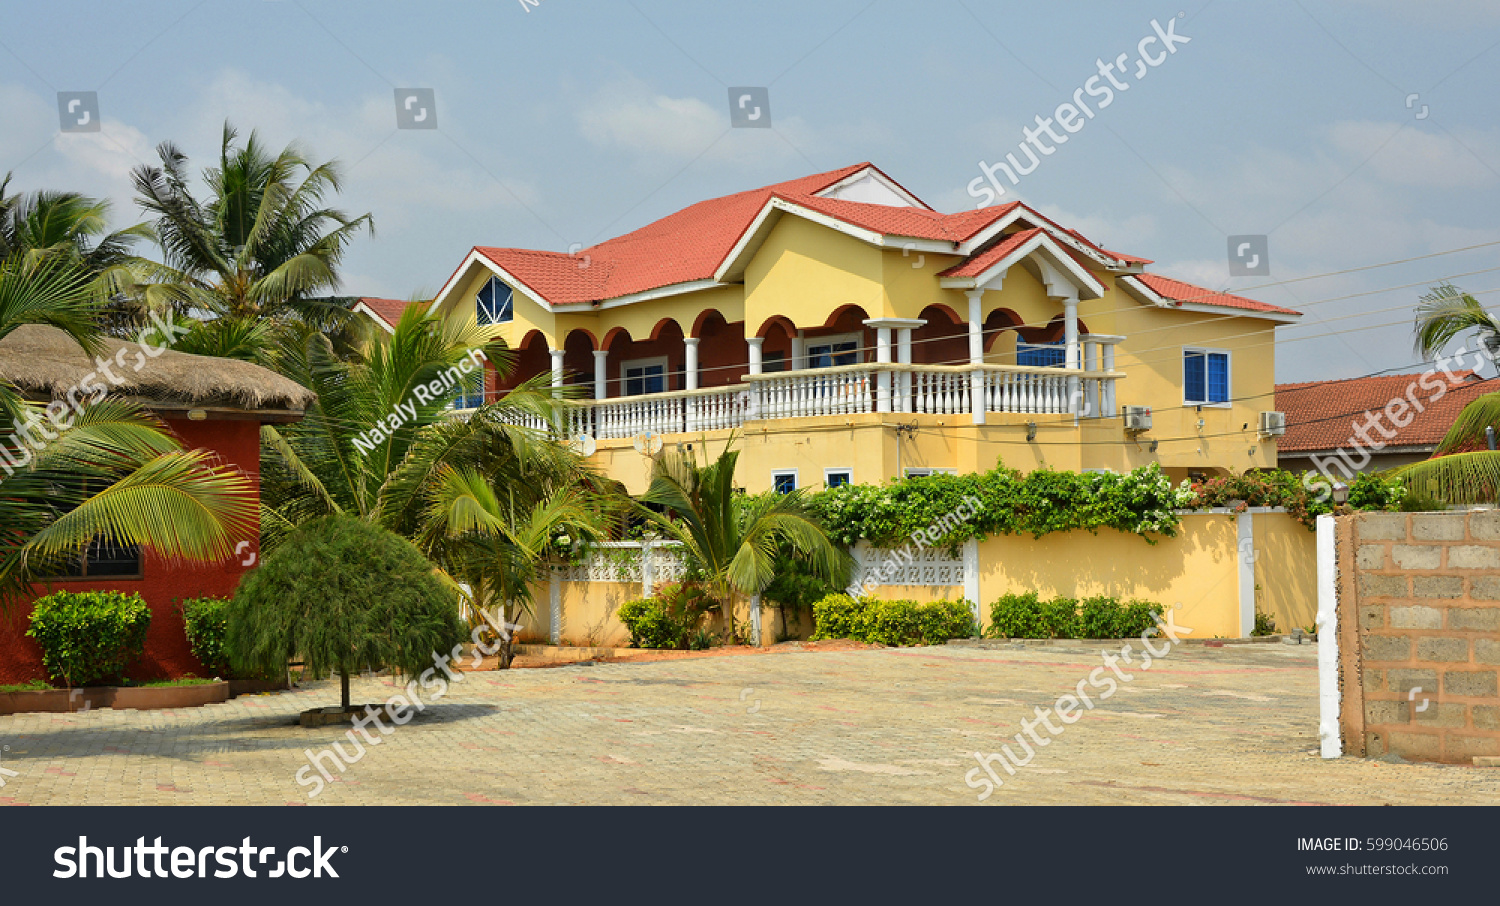 Beautiful photo of residential house in africa with balconies and a red tile roof housing